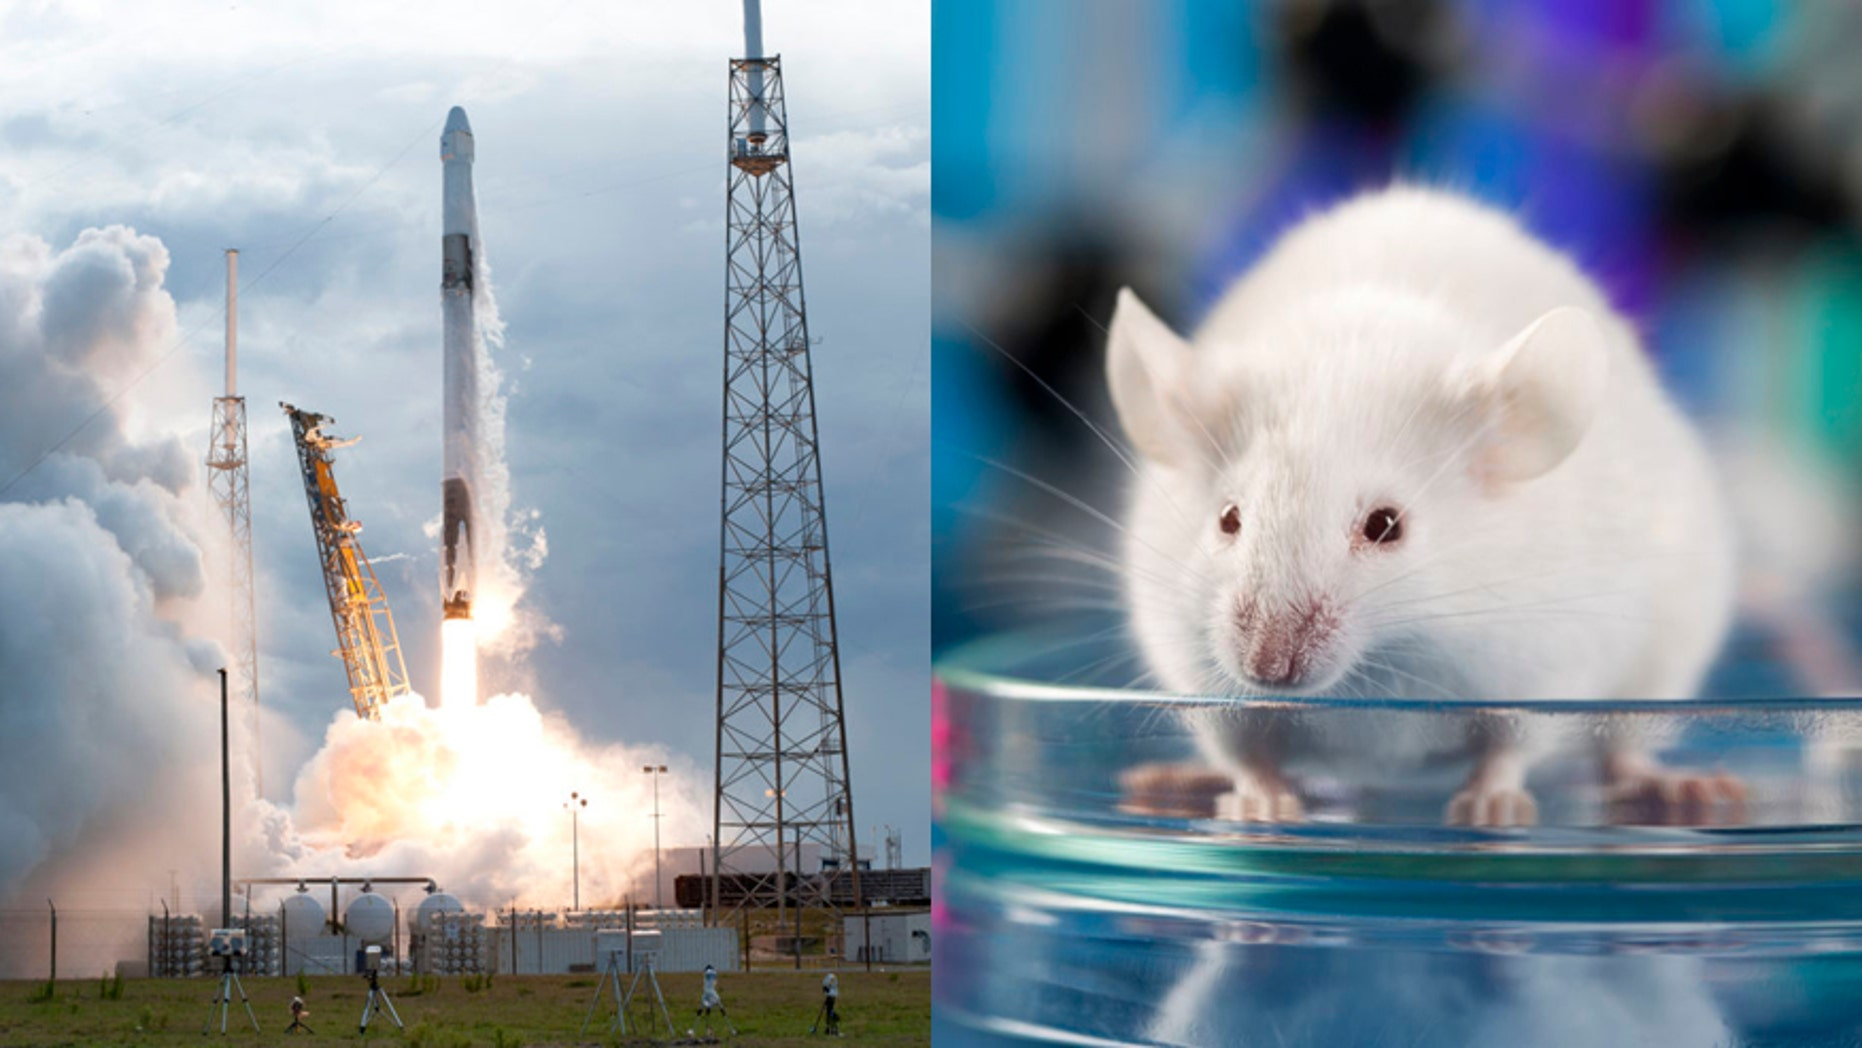 Some 40 mice will be traveling to the ISS in the SpaceX Dragon cargo capsule as part of a project called Rodent Research-8 (RR-8).